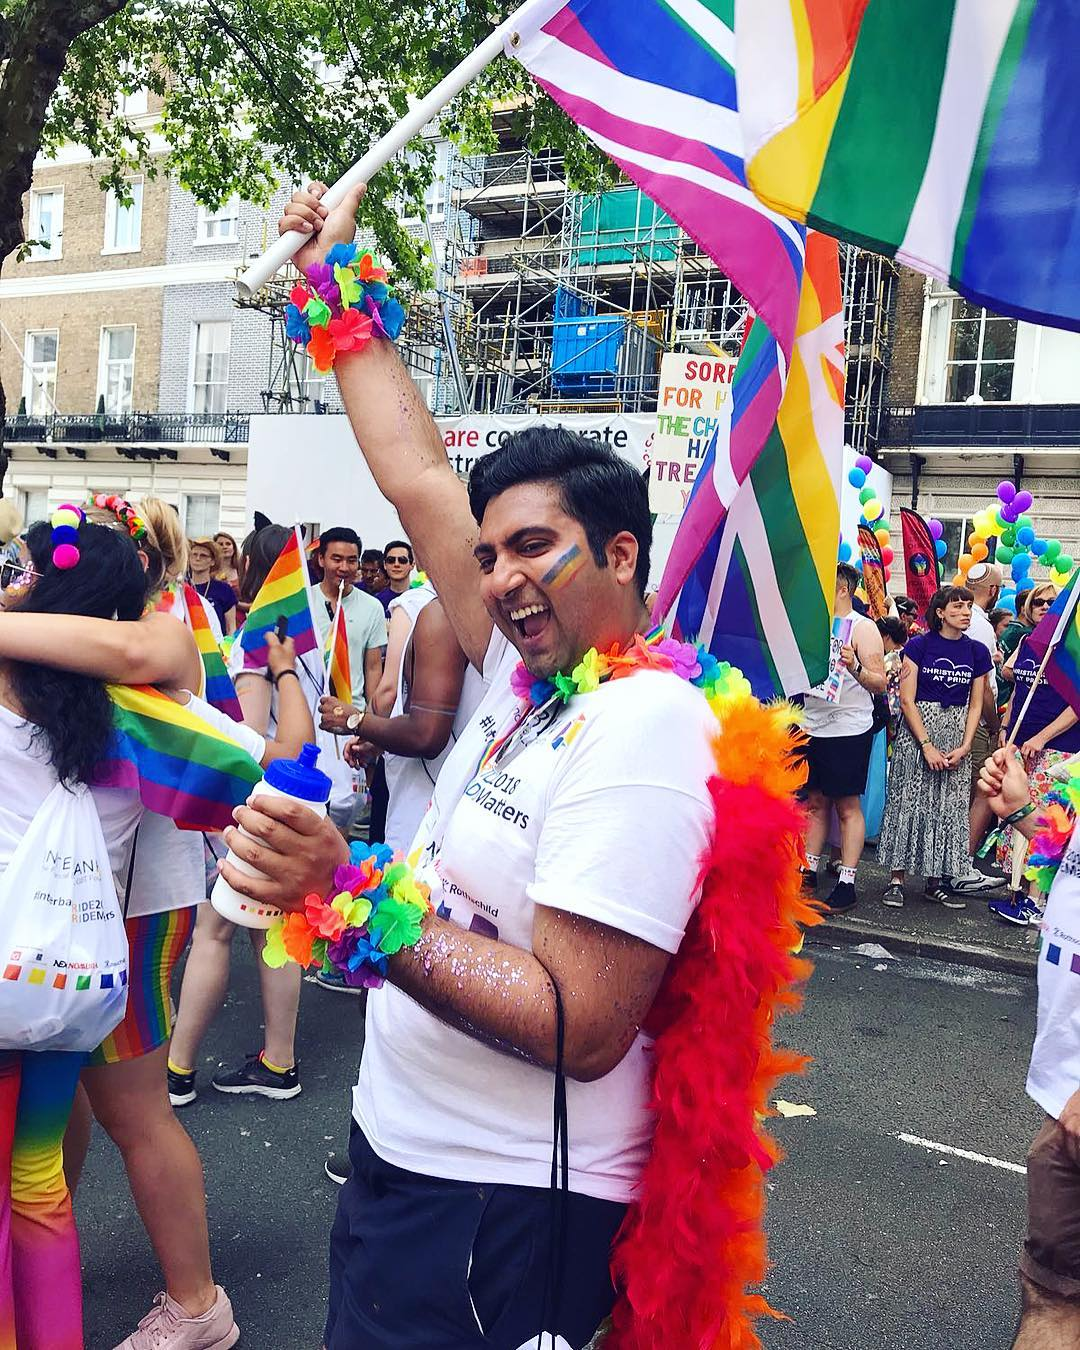 Pride london parade 2018 flag salmansamiali